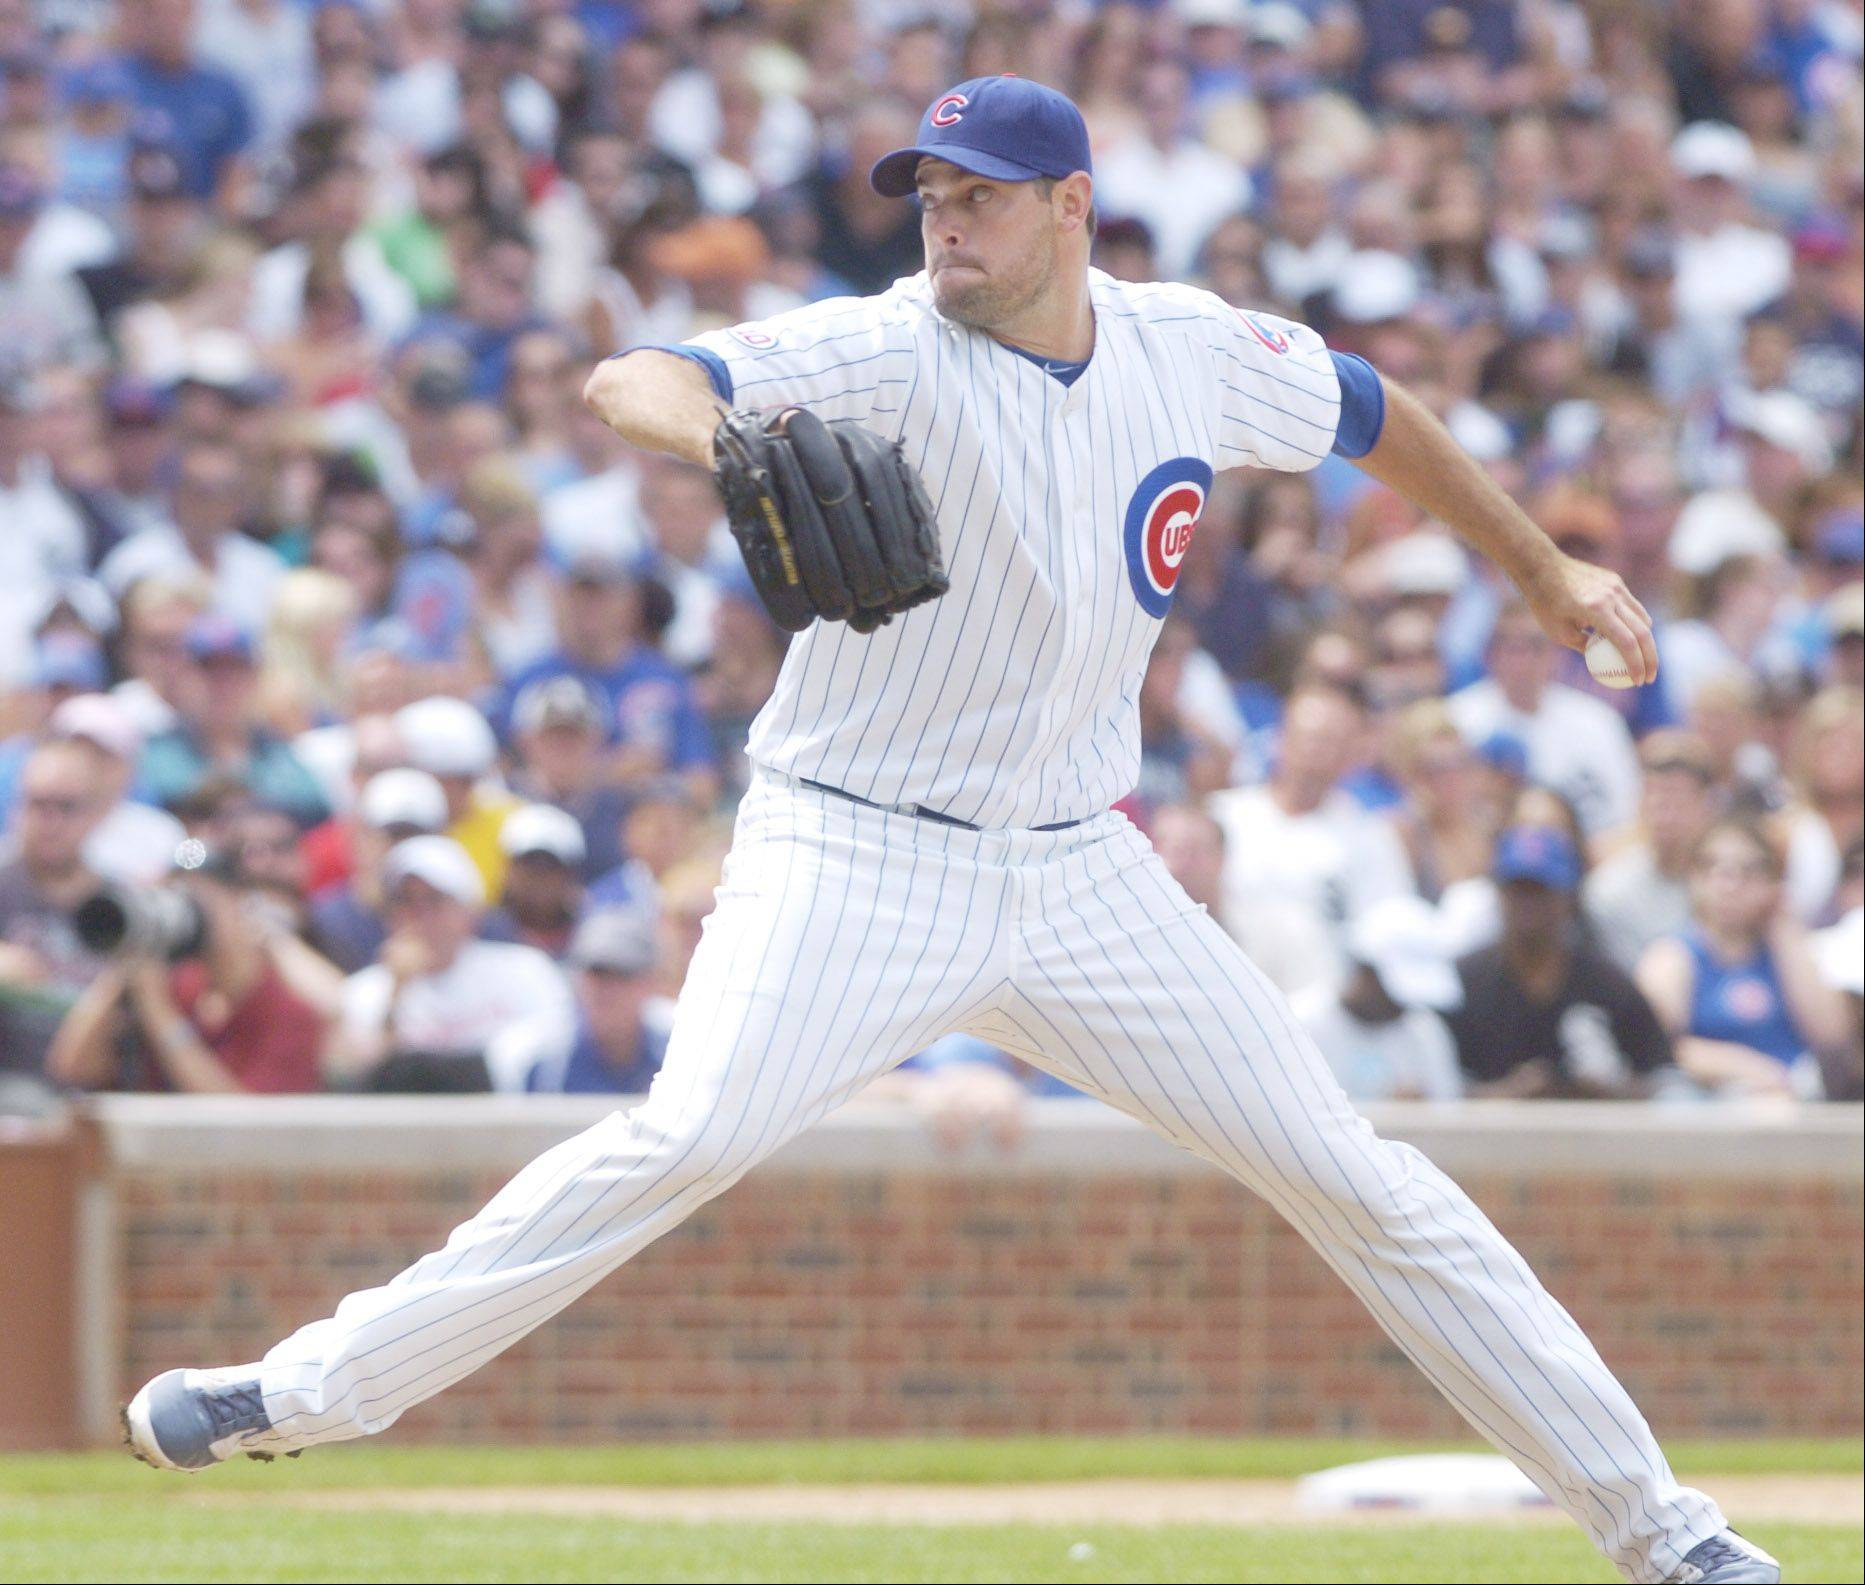 Sean Marshall of the Cubs pitches during the eighth inning against the White Sox Sunday.